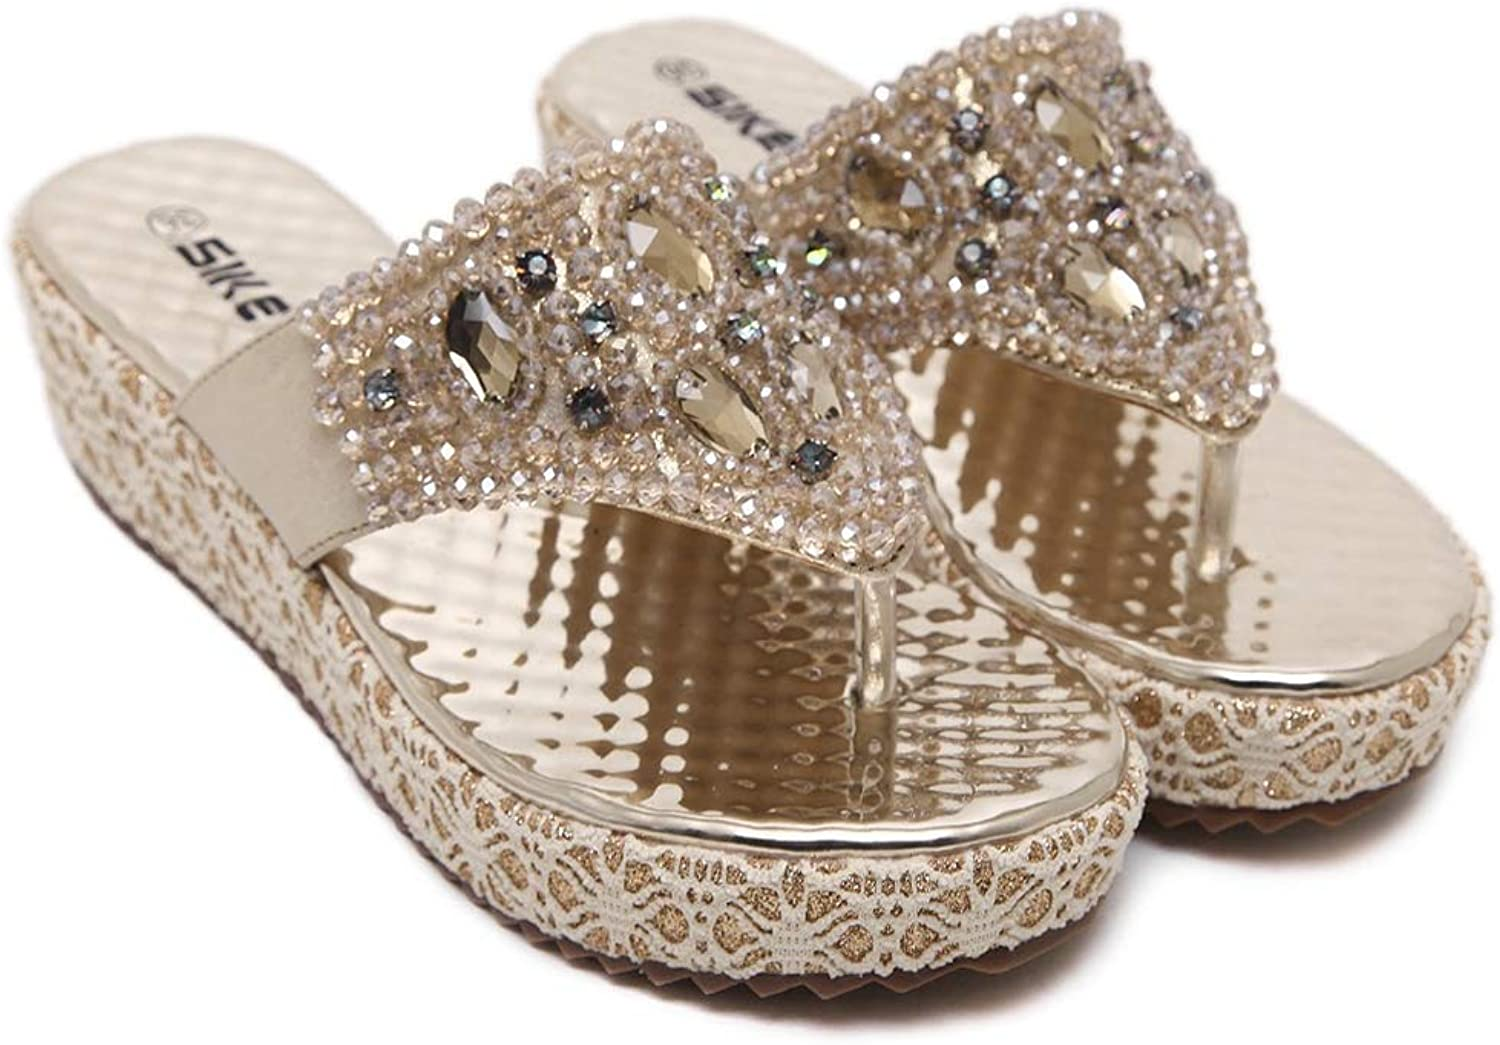 T-JULY Women Summer Sandals Fashion Bead Rhinestone Leisure Flip Flops Beach shoes Slippers in gold or Silver